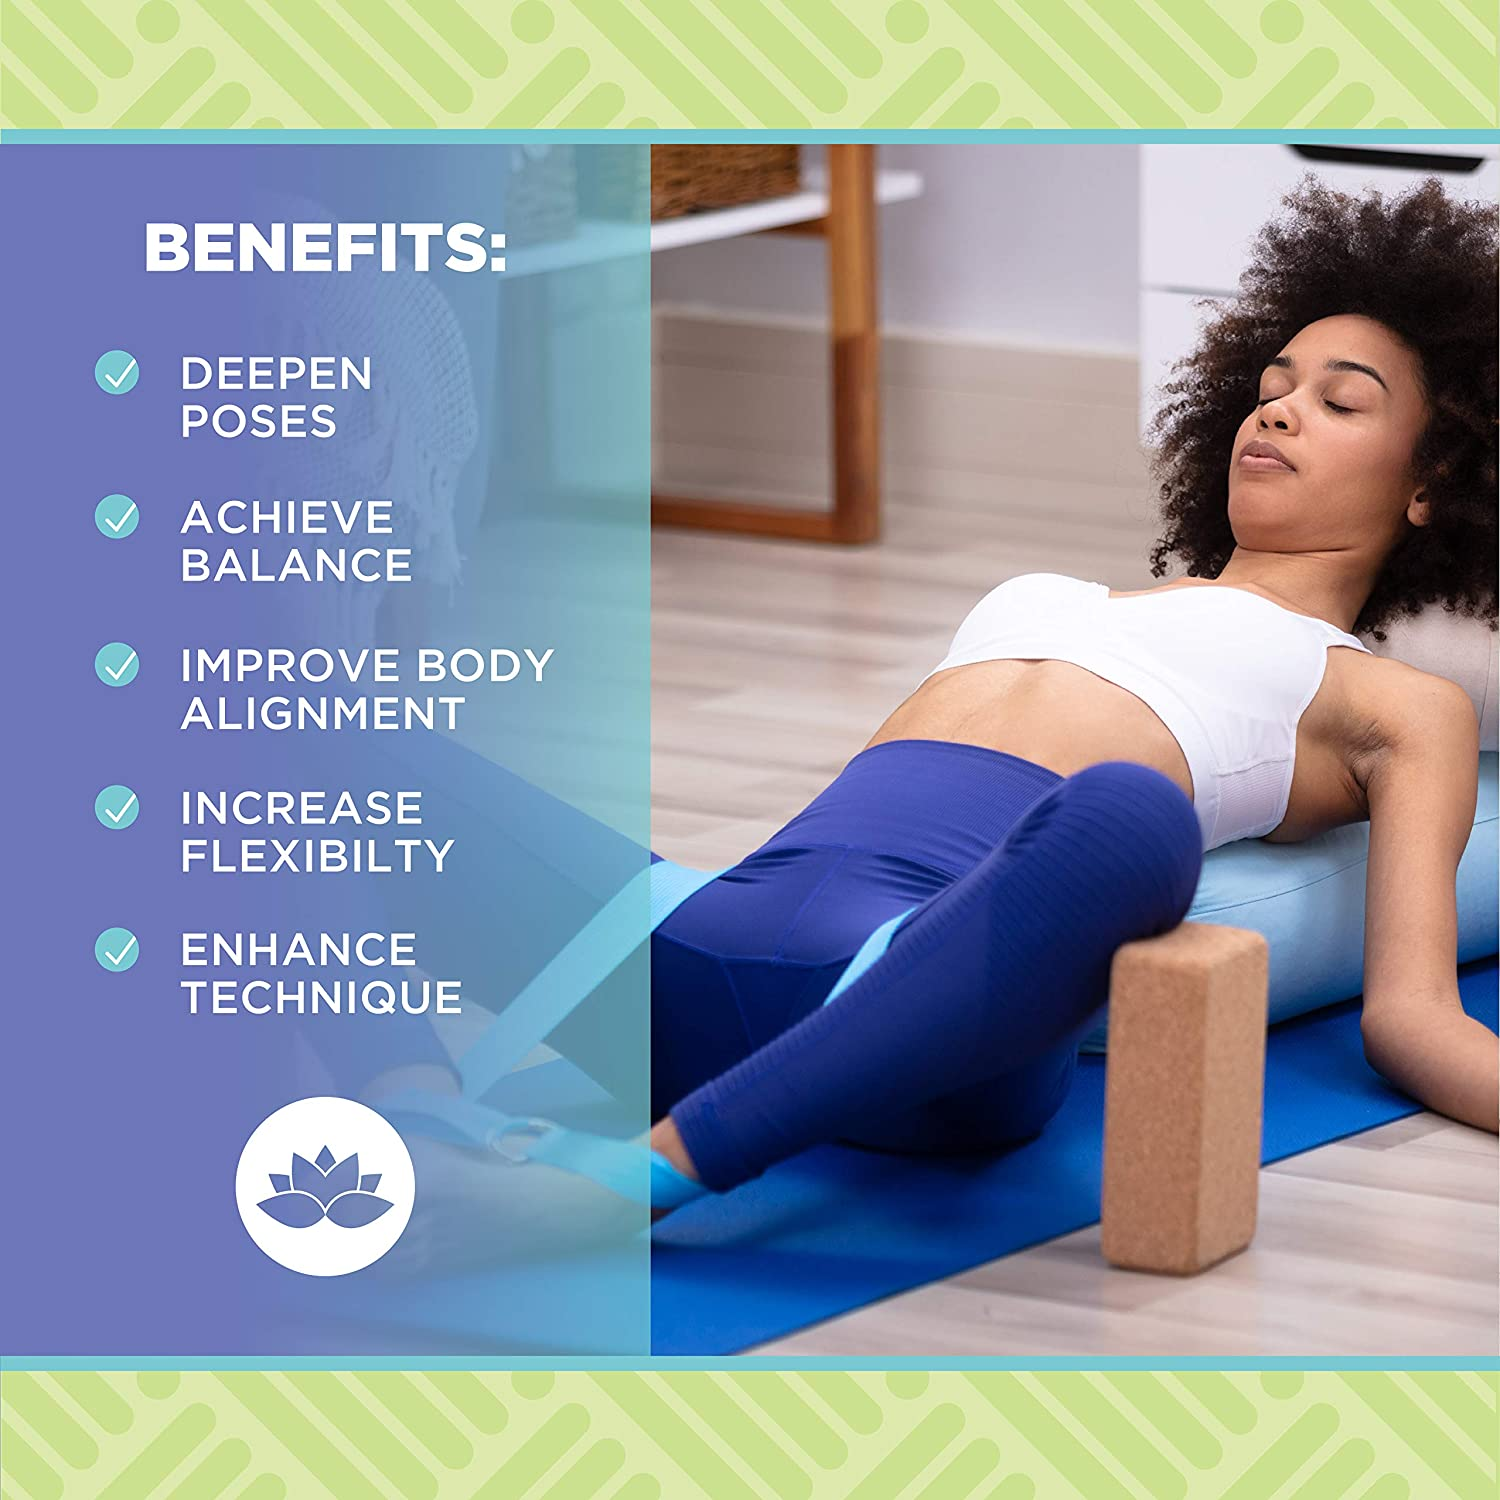 100/% Natural Cork or Foam Made from Eco Friendly Materials Improves Stability /& Alignment Bean Products Yoga Blocks 2 in 2 Pack Sets or Single Blocks Non-Slip Studio Grade